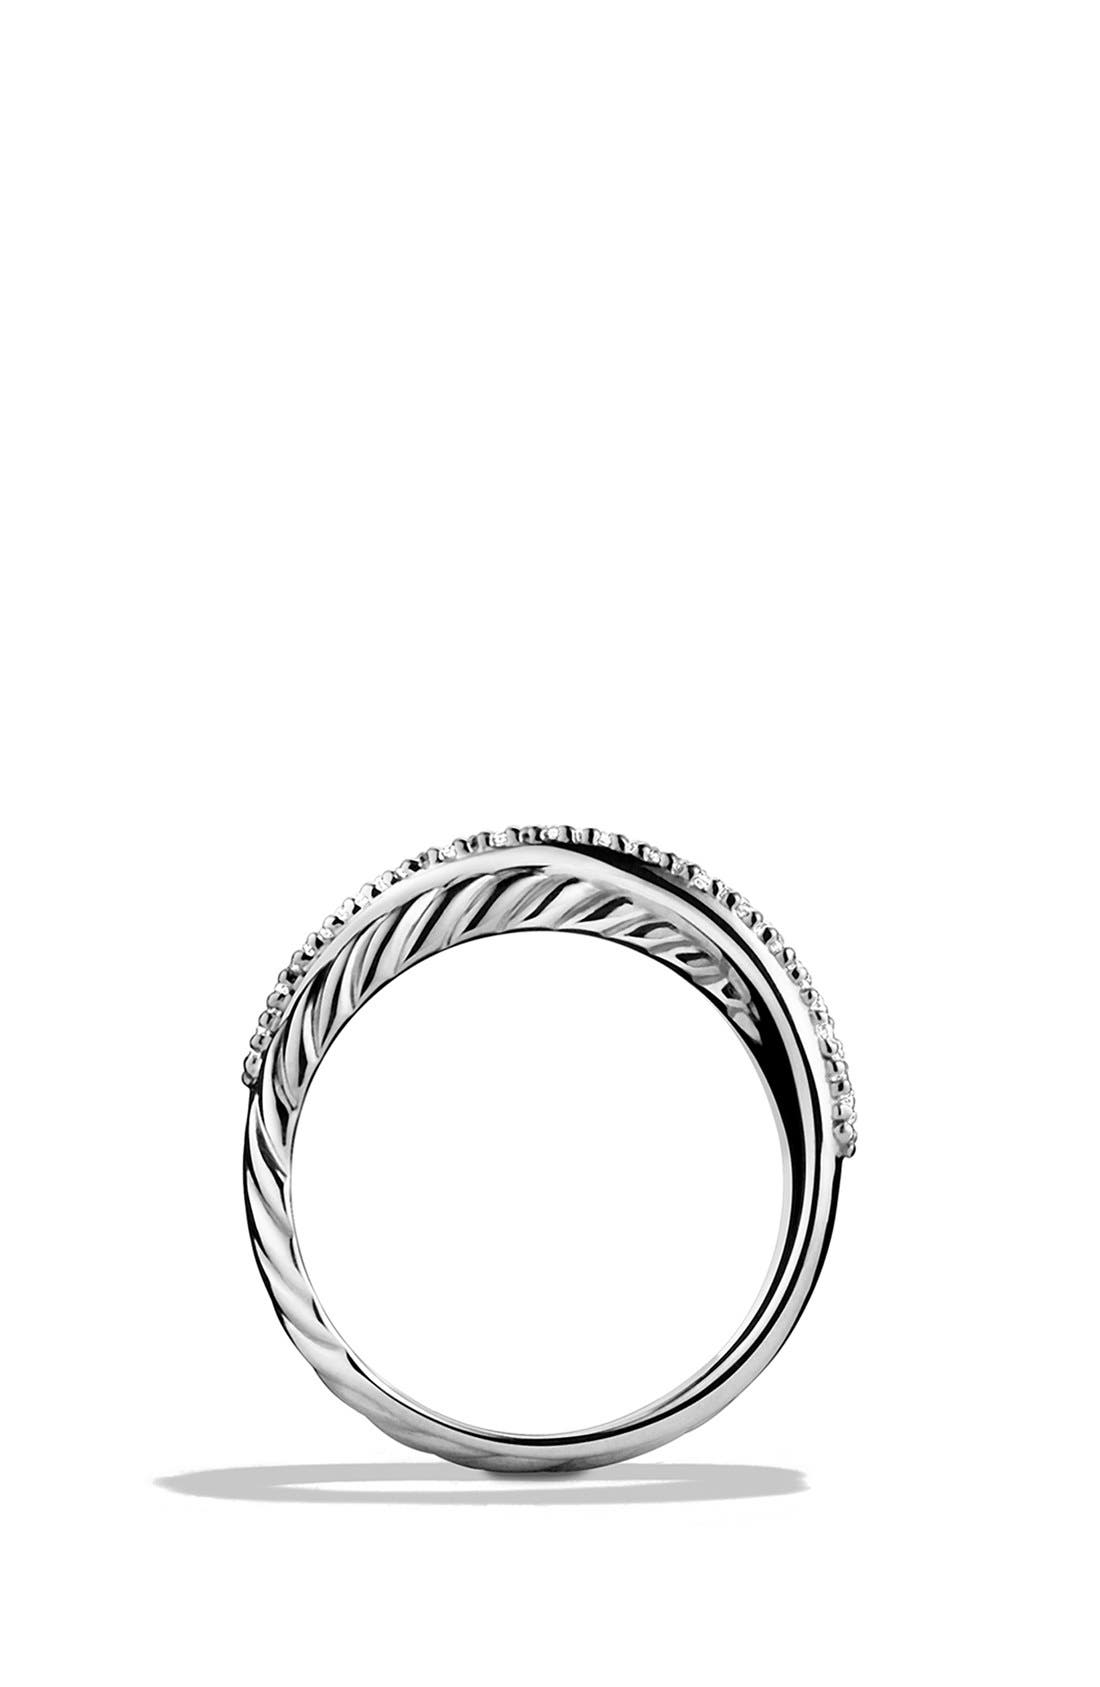 'Crossover' Ring with Diamonds,                             Alternate thumbnail 4, color,                             SILVER